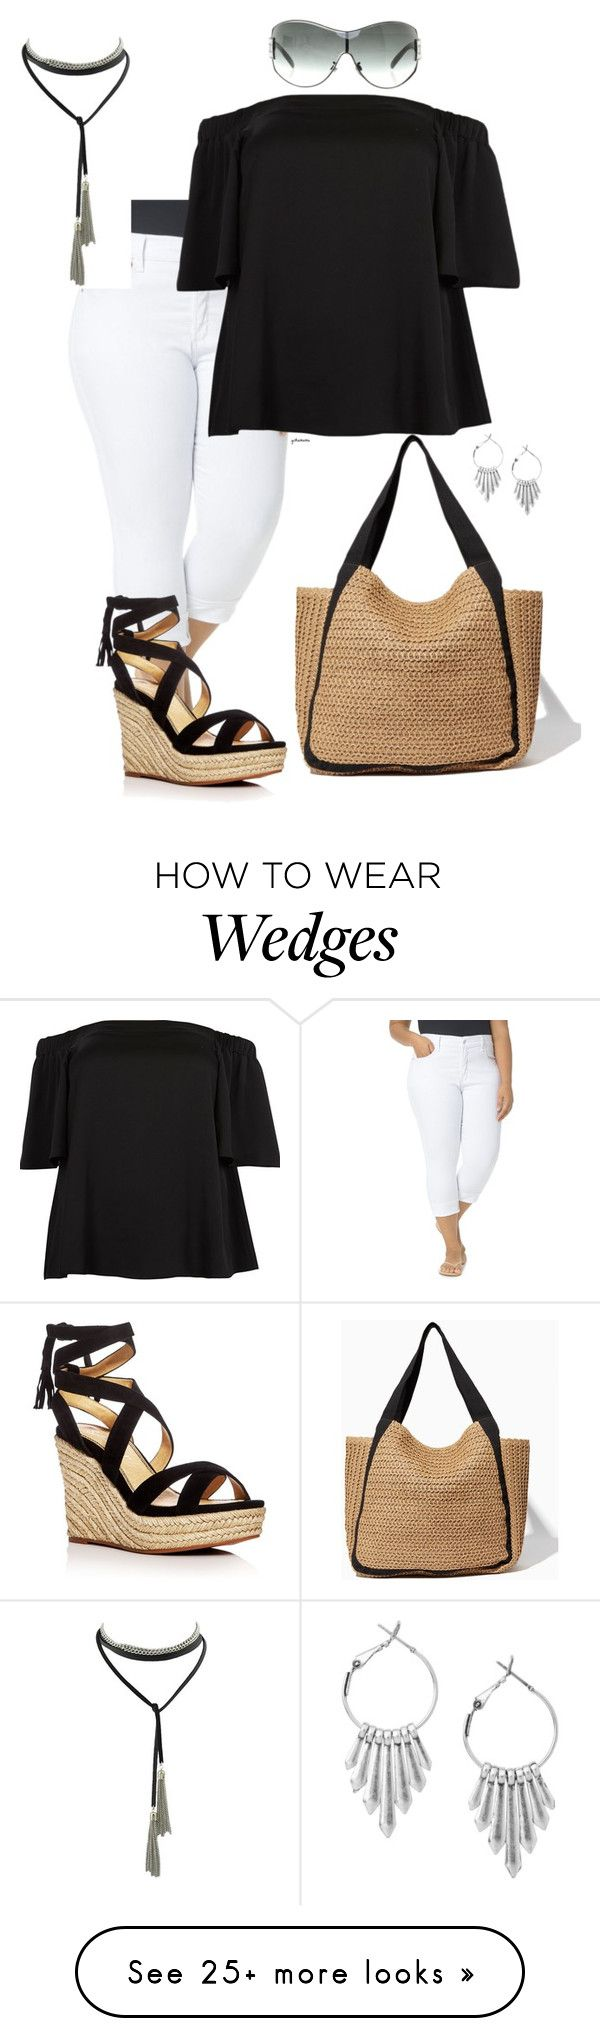 """""""Style inspiration- plus size"""" by gchamama on Polyvore featuring NYDJ, River Island, Splendid and Chanel"""